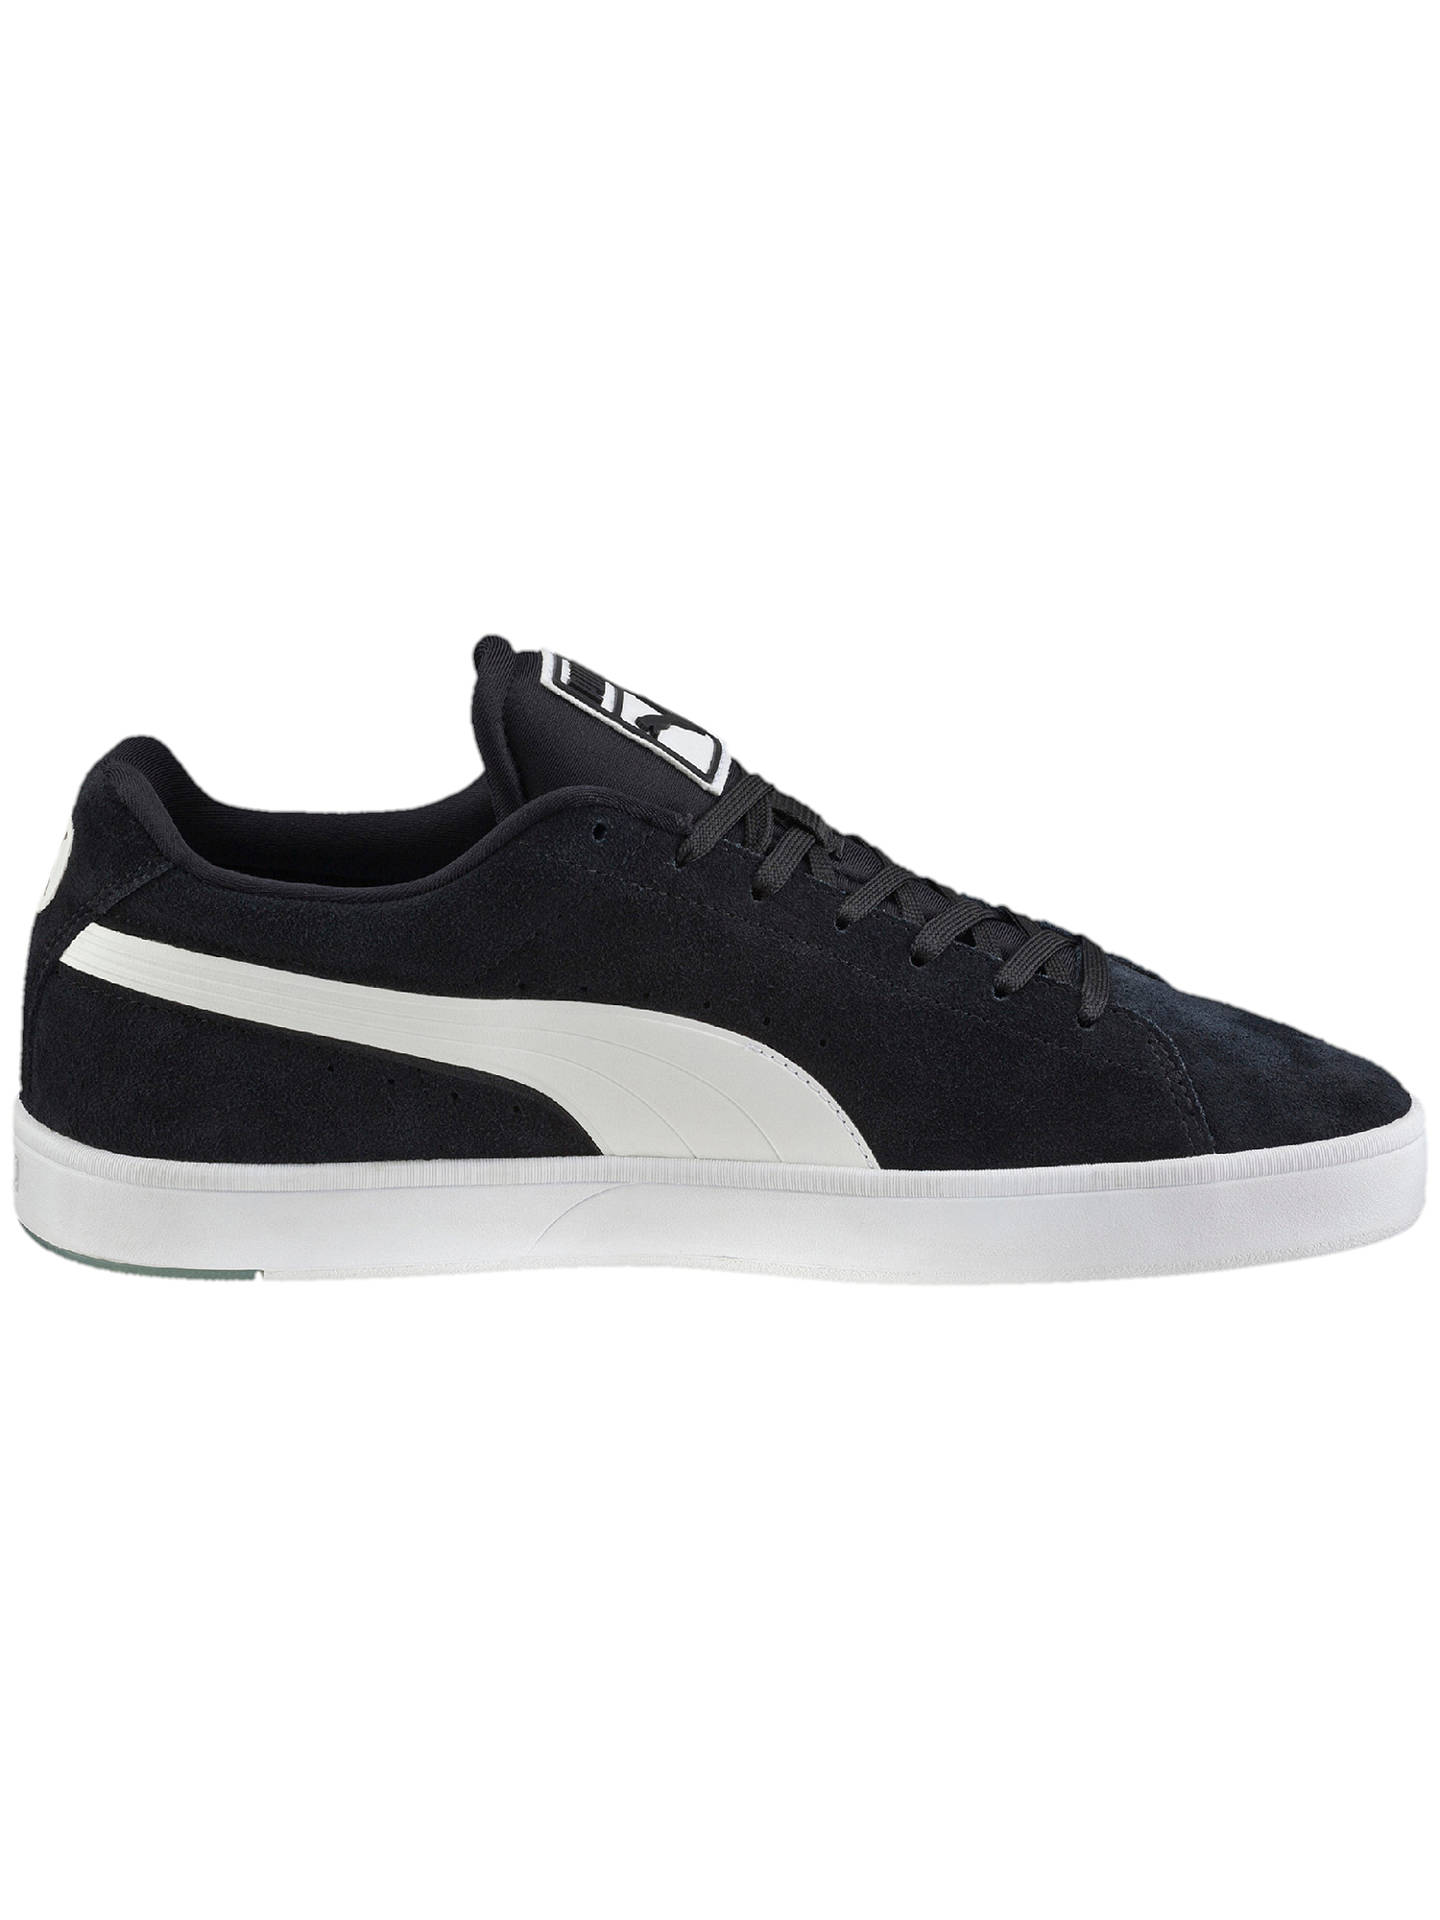 Puma Suede Classic Men's Trainers at John Lewis & Partners